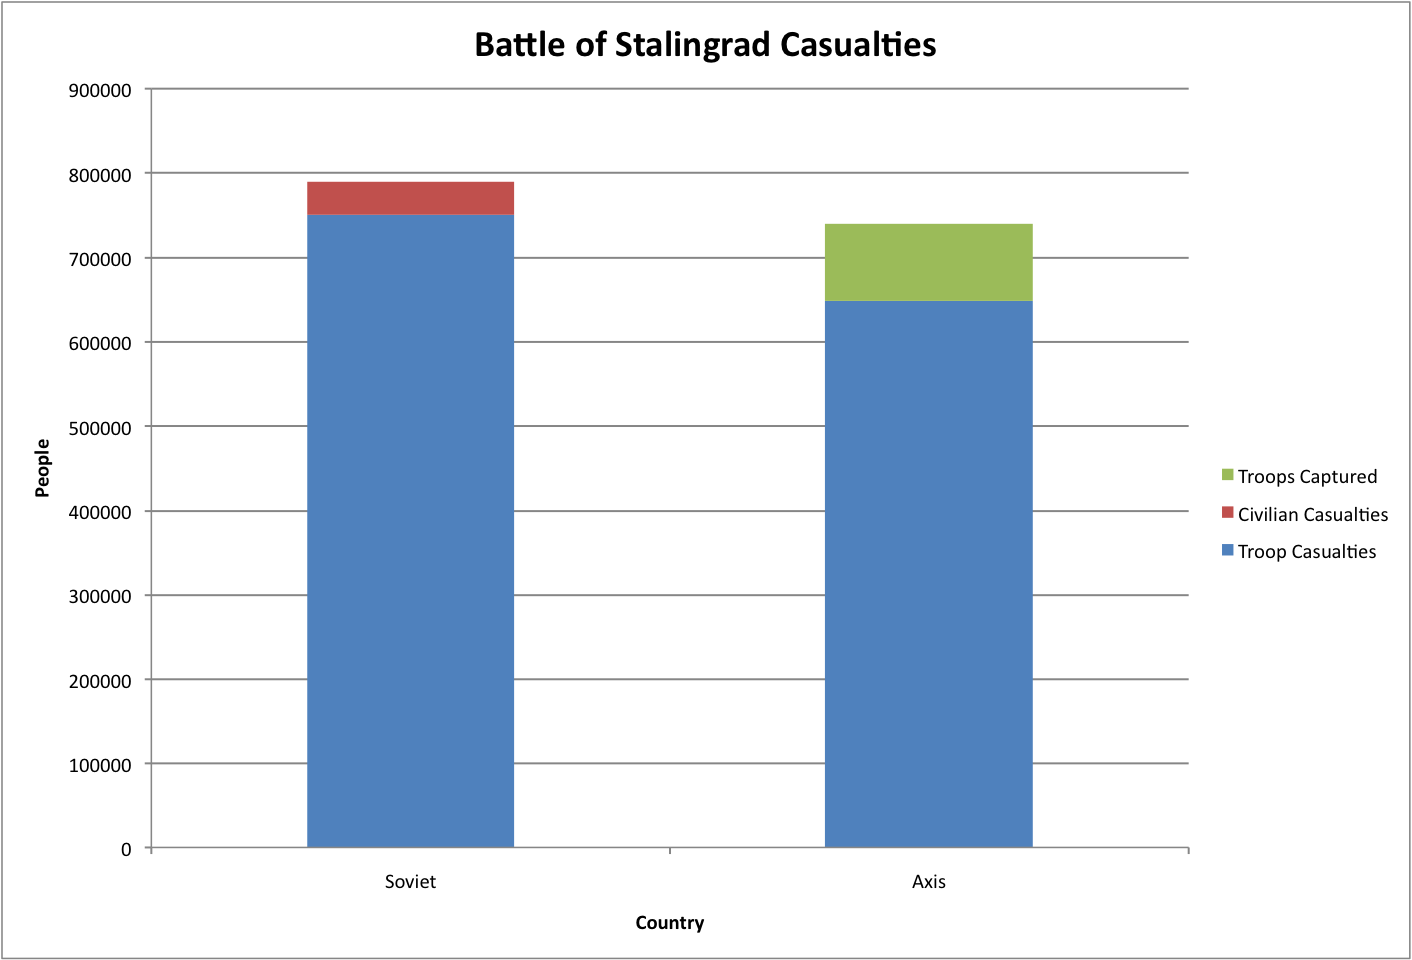 How many people died in stalingrad from the USSR